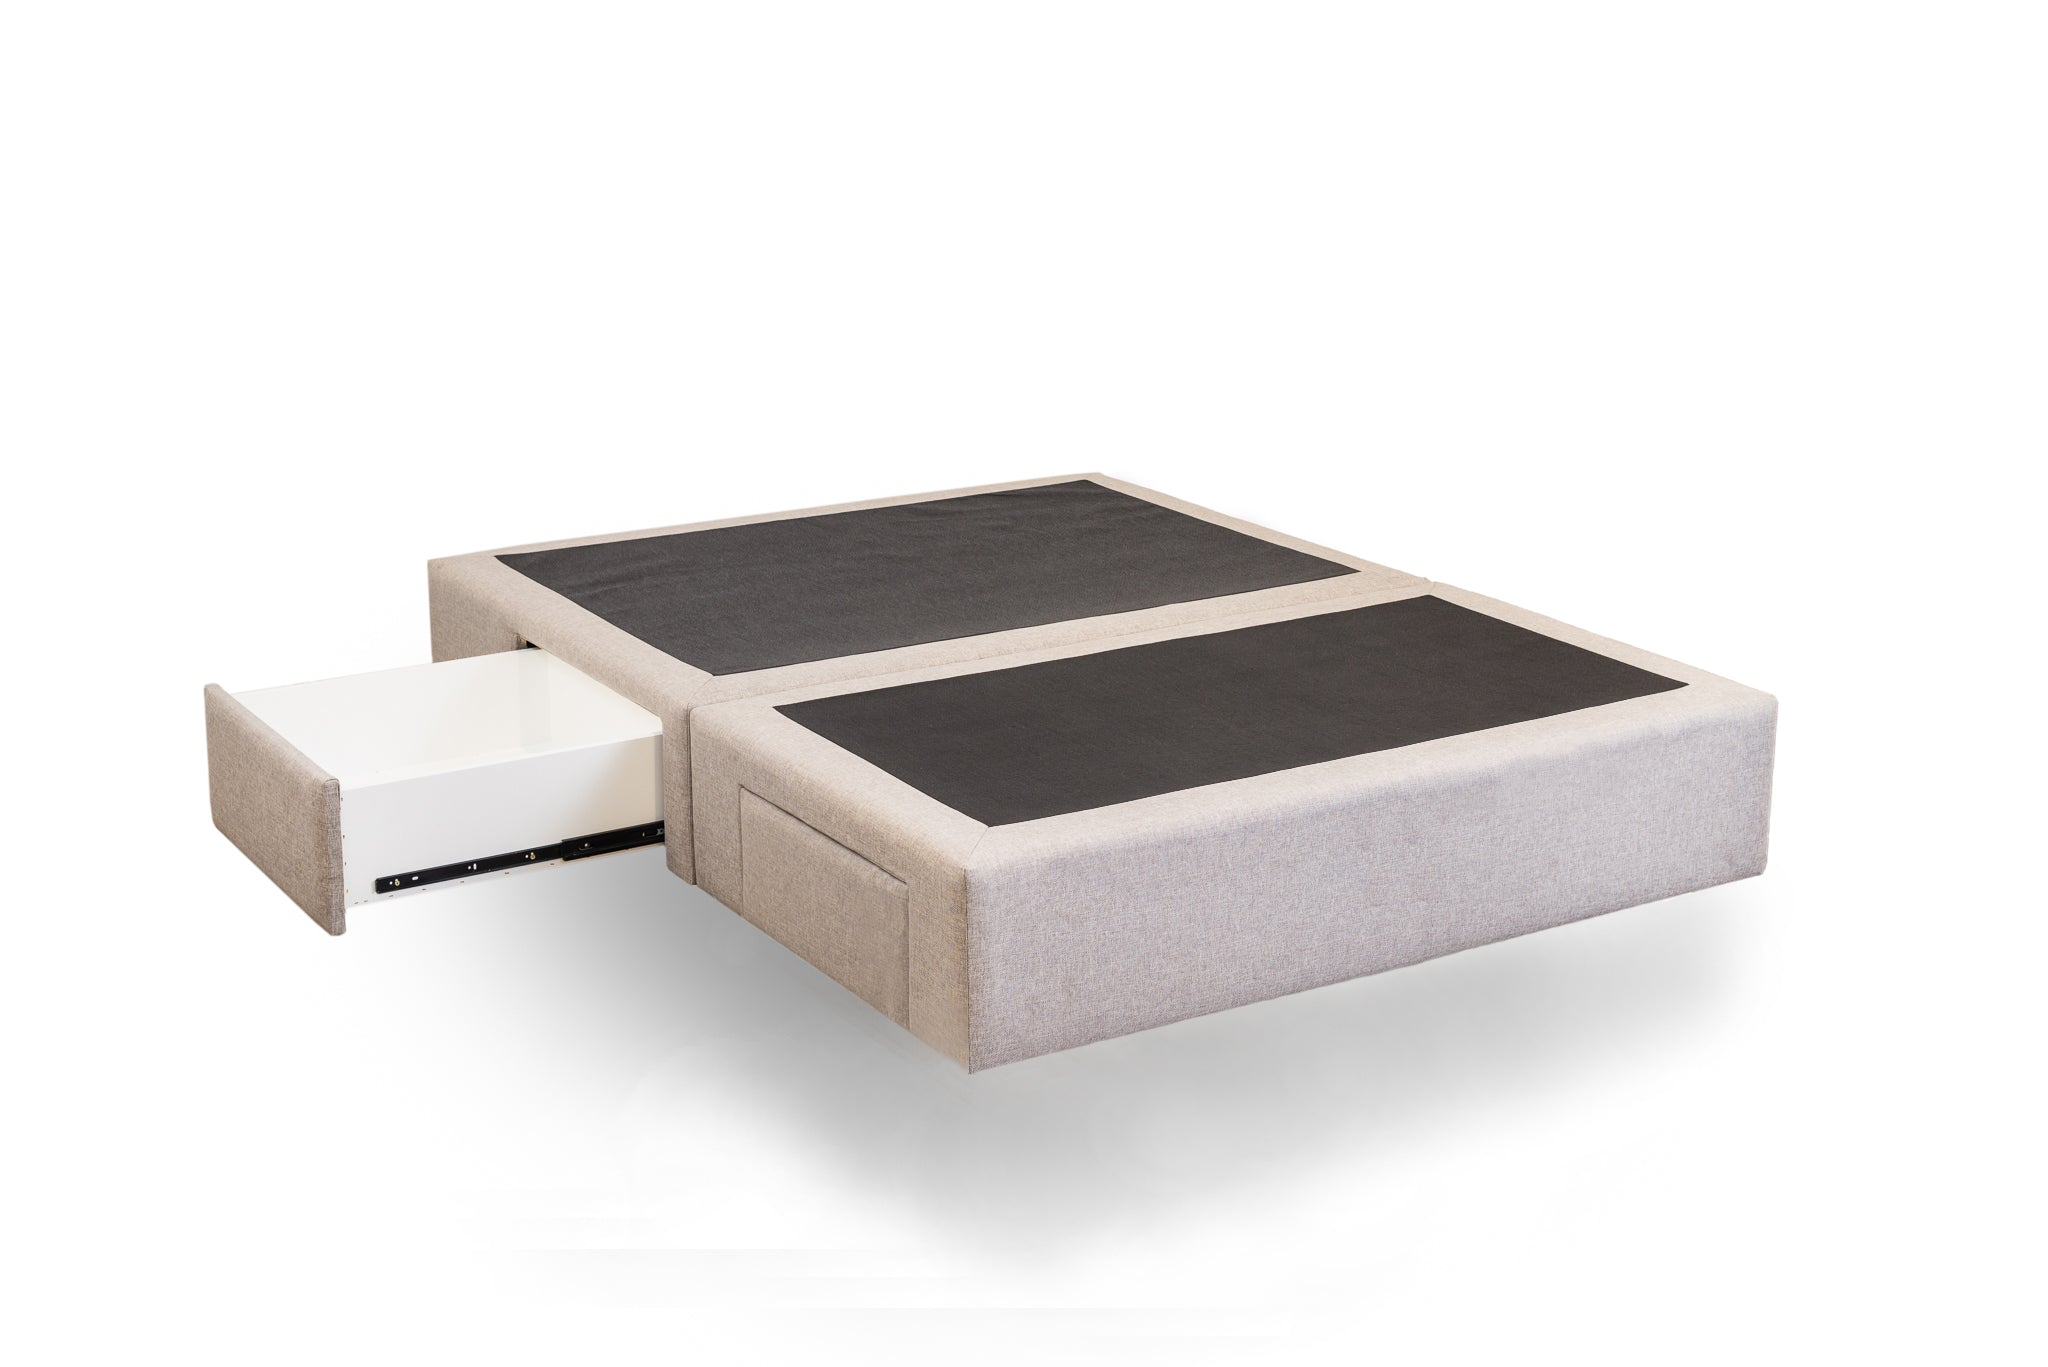 Sleep Smart 4 Layer Mattress